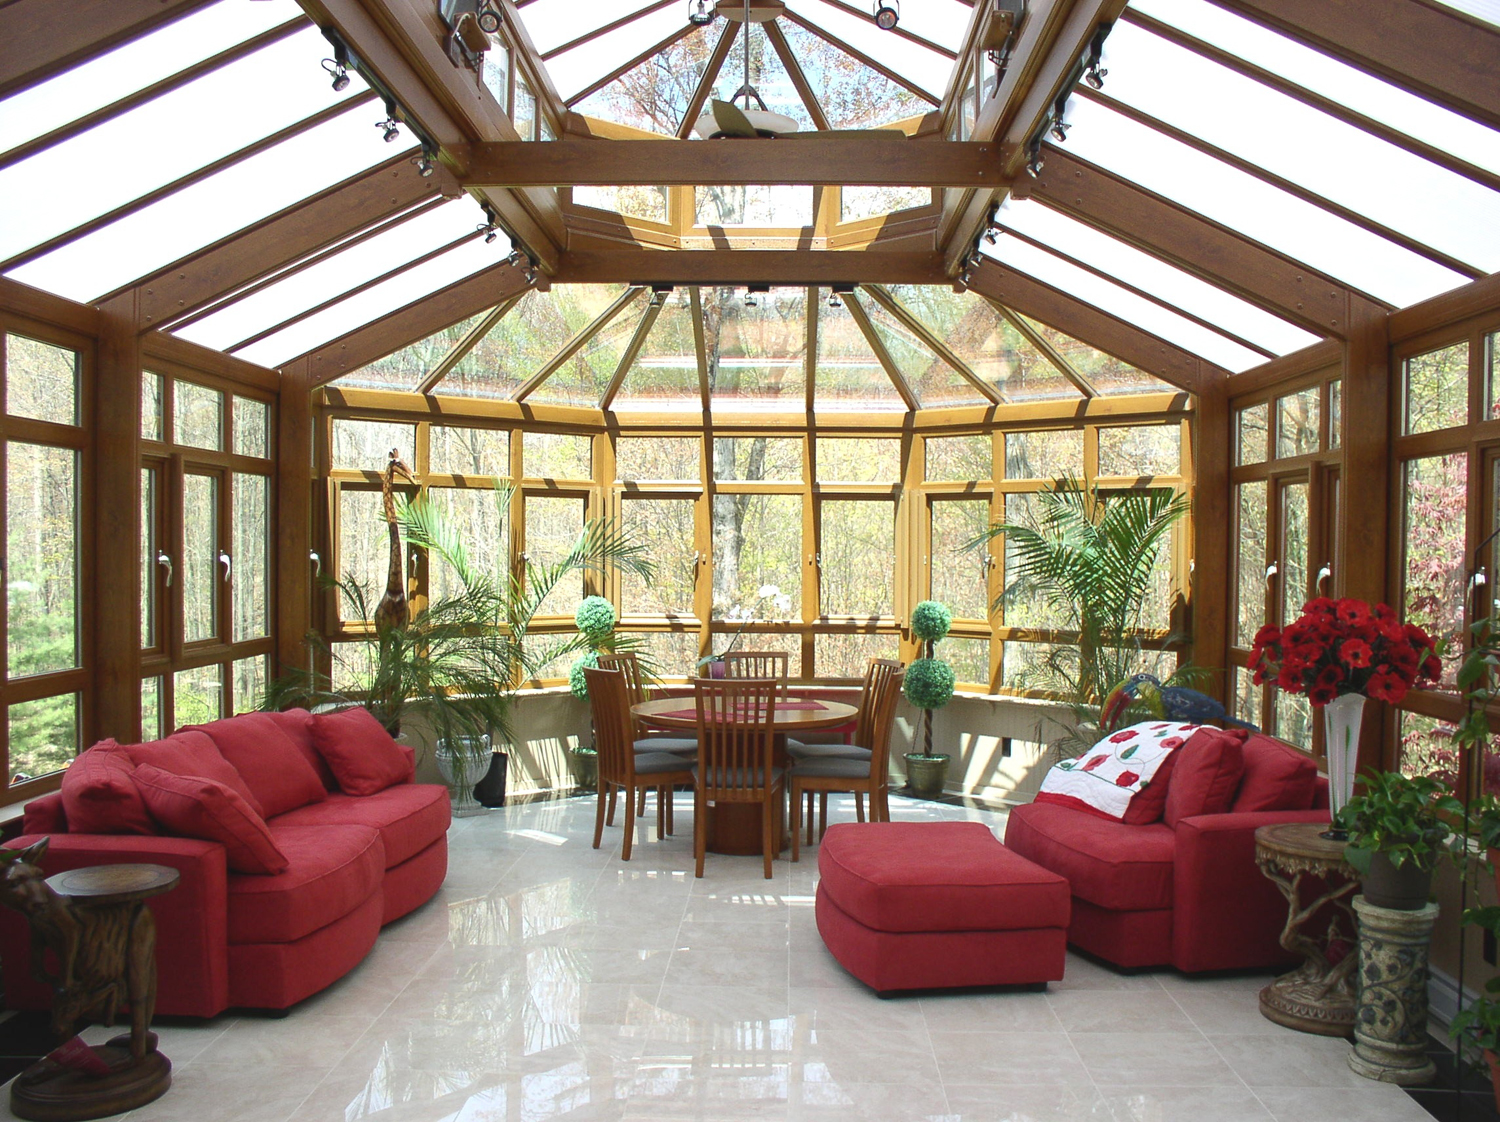 Building plans for sunrooms find house plans Solarium designs